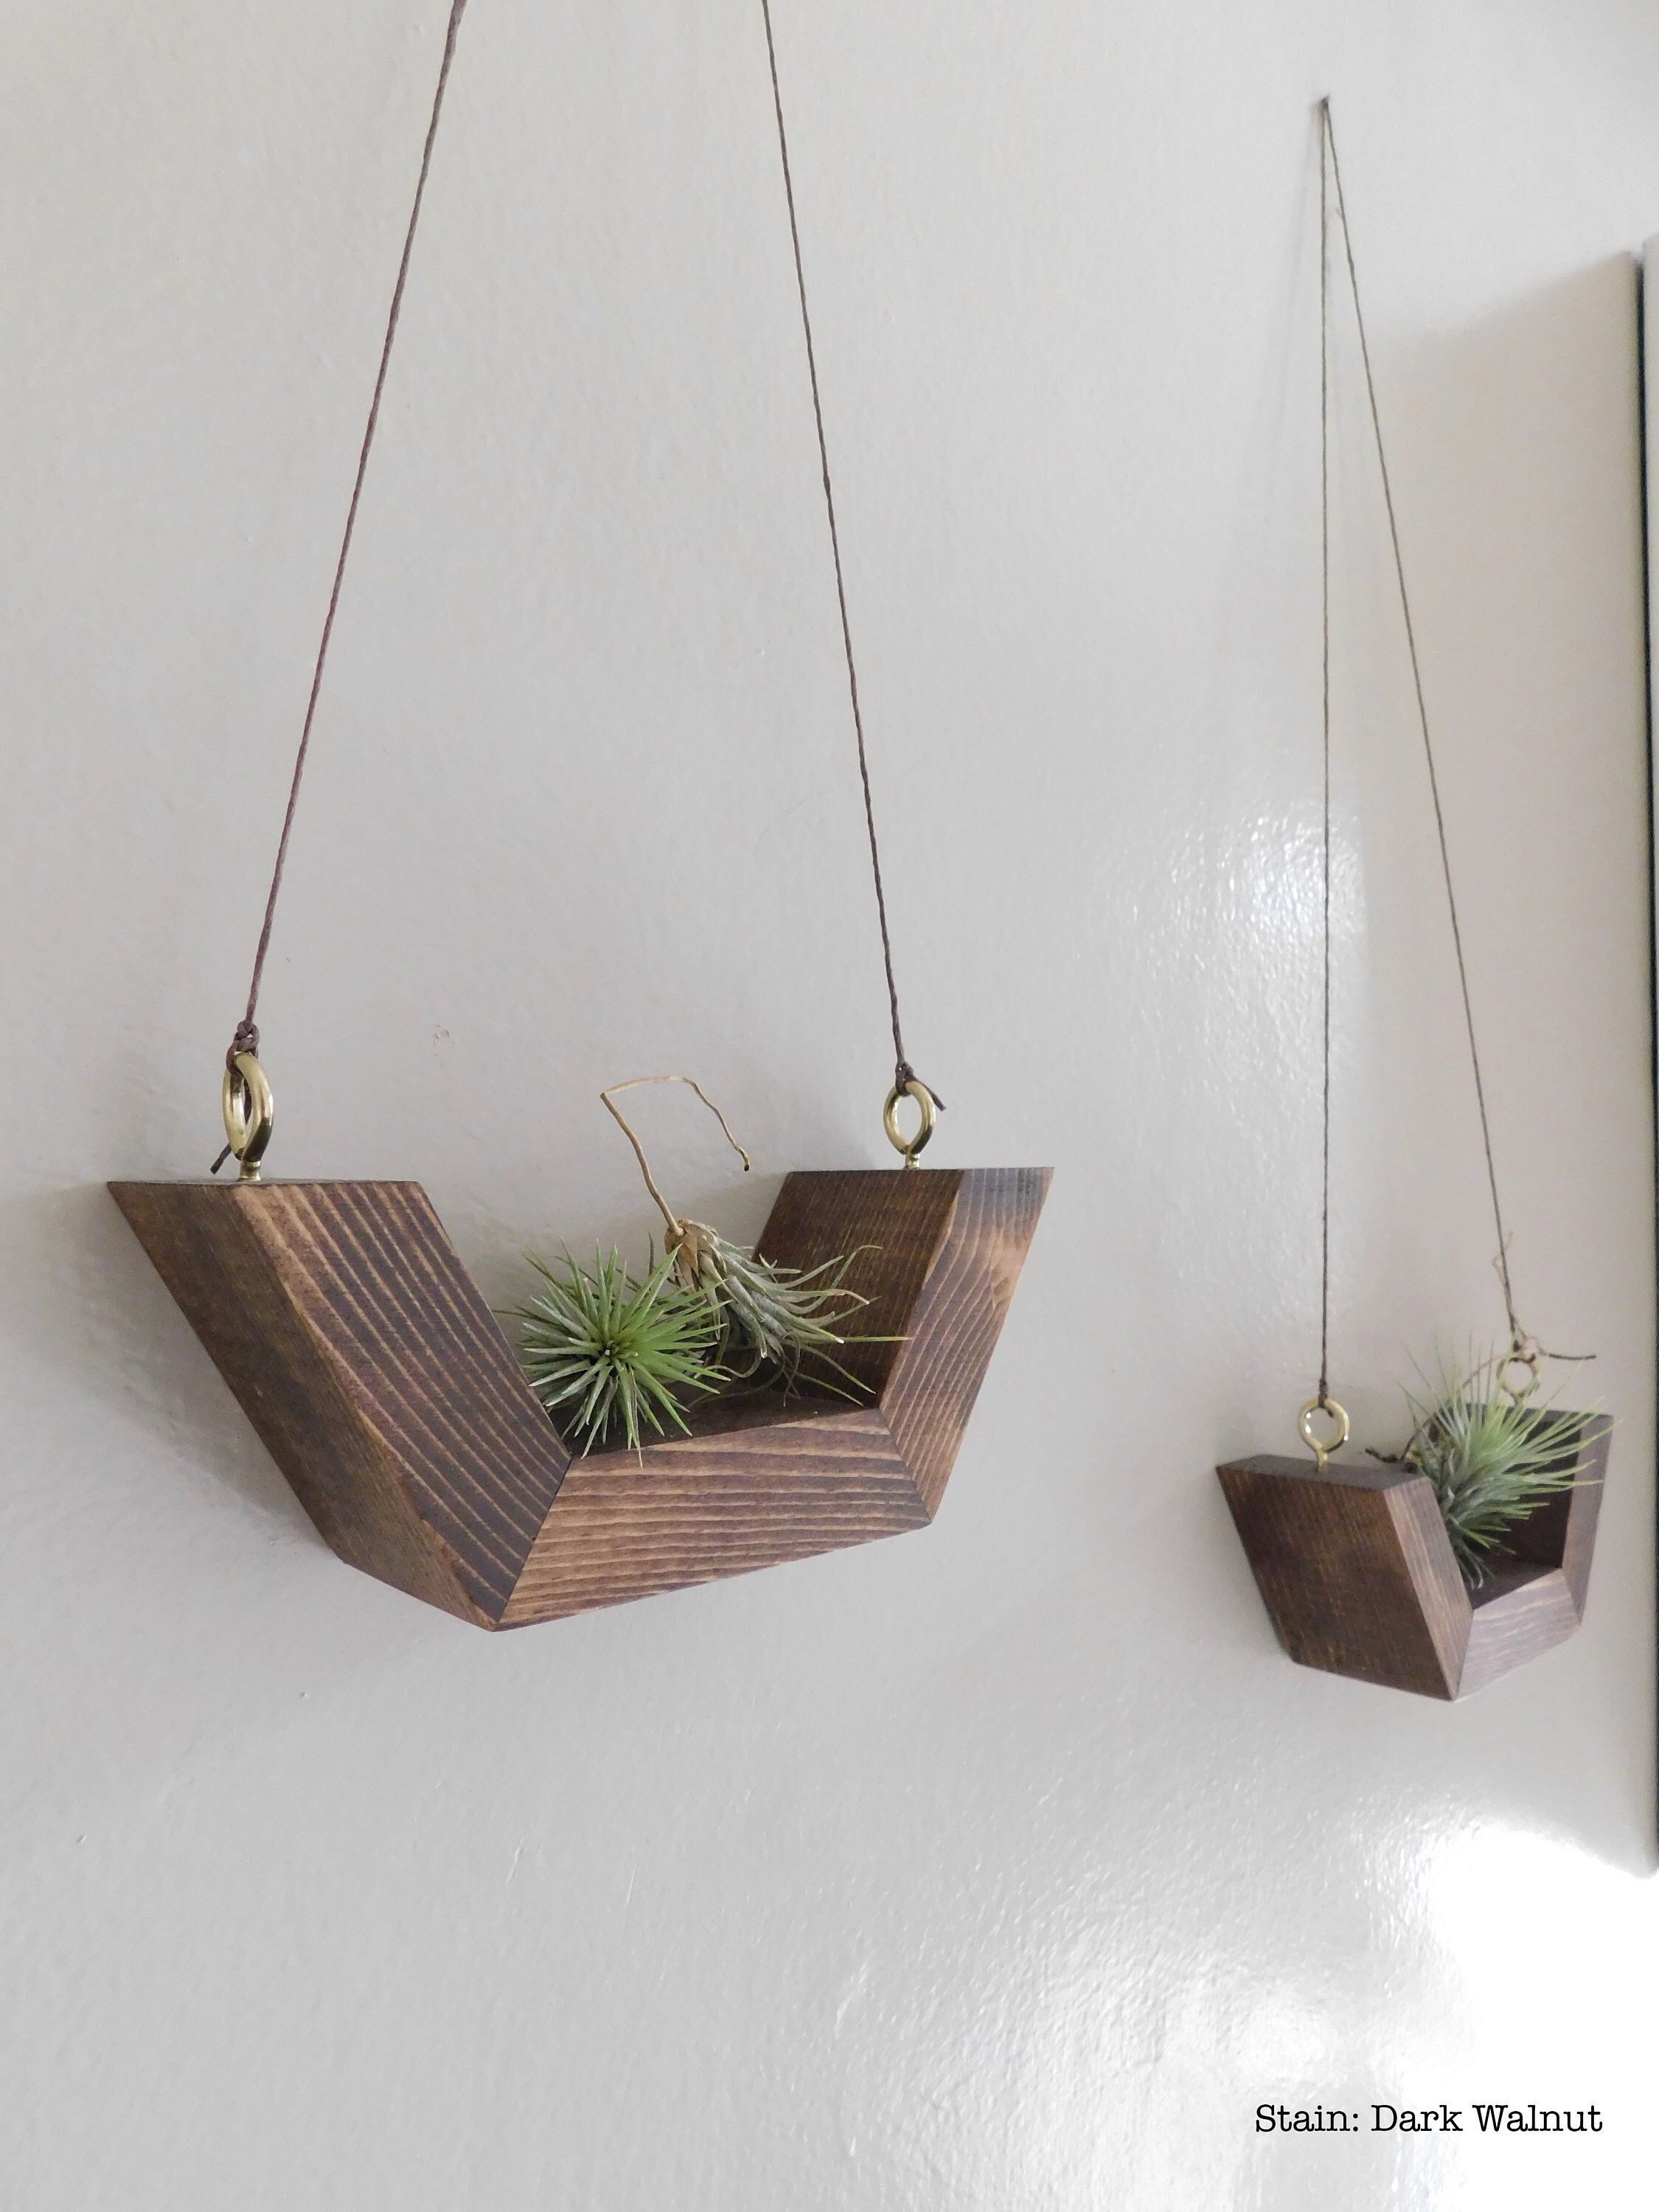 Airplant Wall Hanging Wall Planter Airplants Wooden Airplant Holders Simple Wall Plant Hangi Wooden Wall Hangings Hanging Wall Planters Hanging Wall Decor